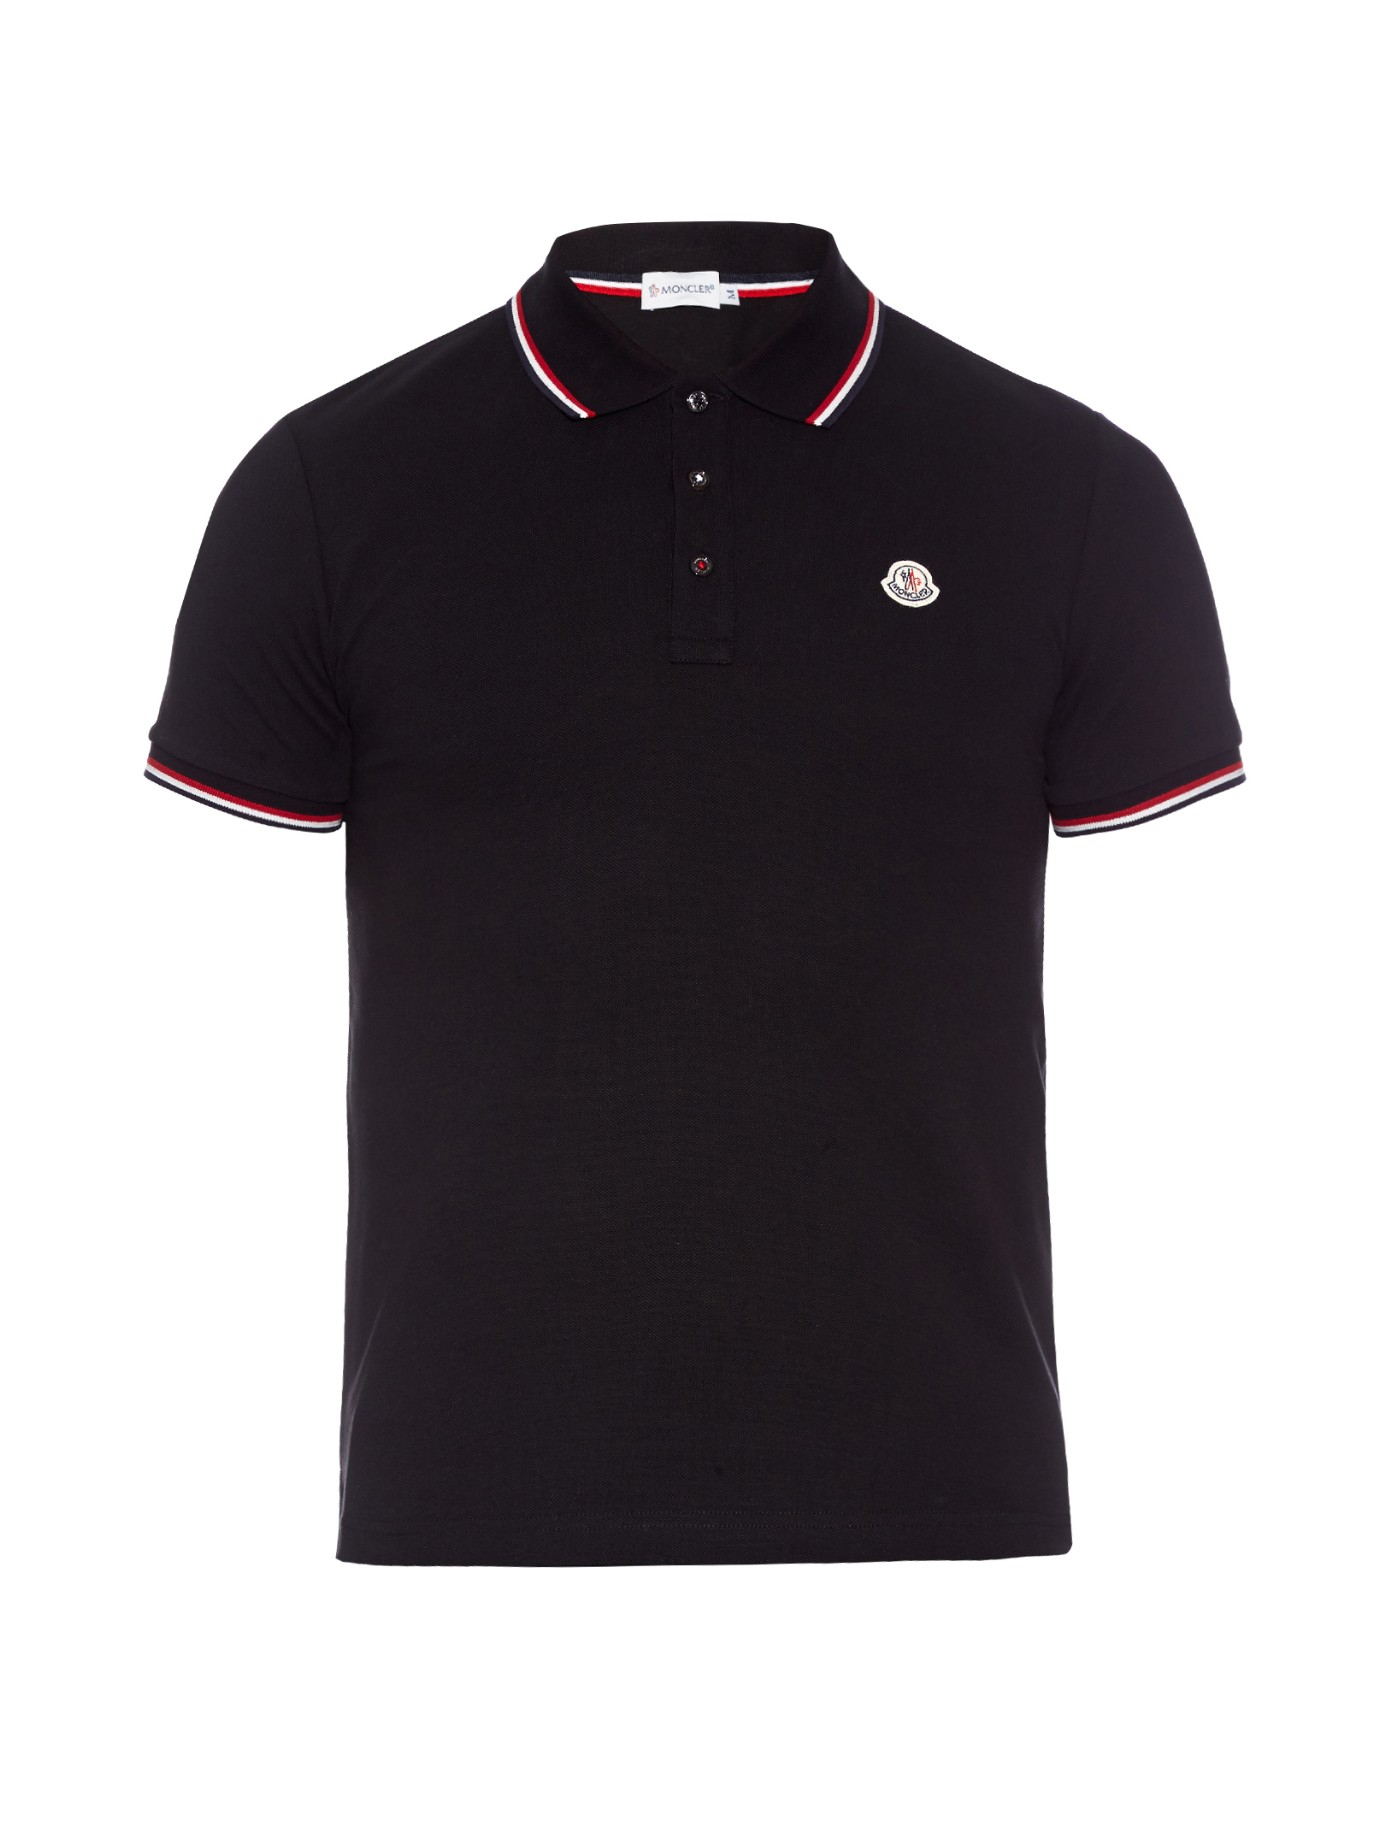 096d57c54 Lyst for Polo trim Black Striped Cotton in Moncler Shirt Men piqué ...